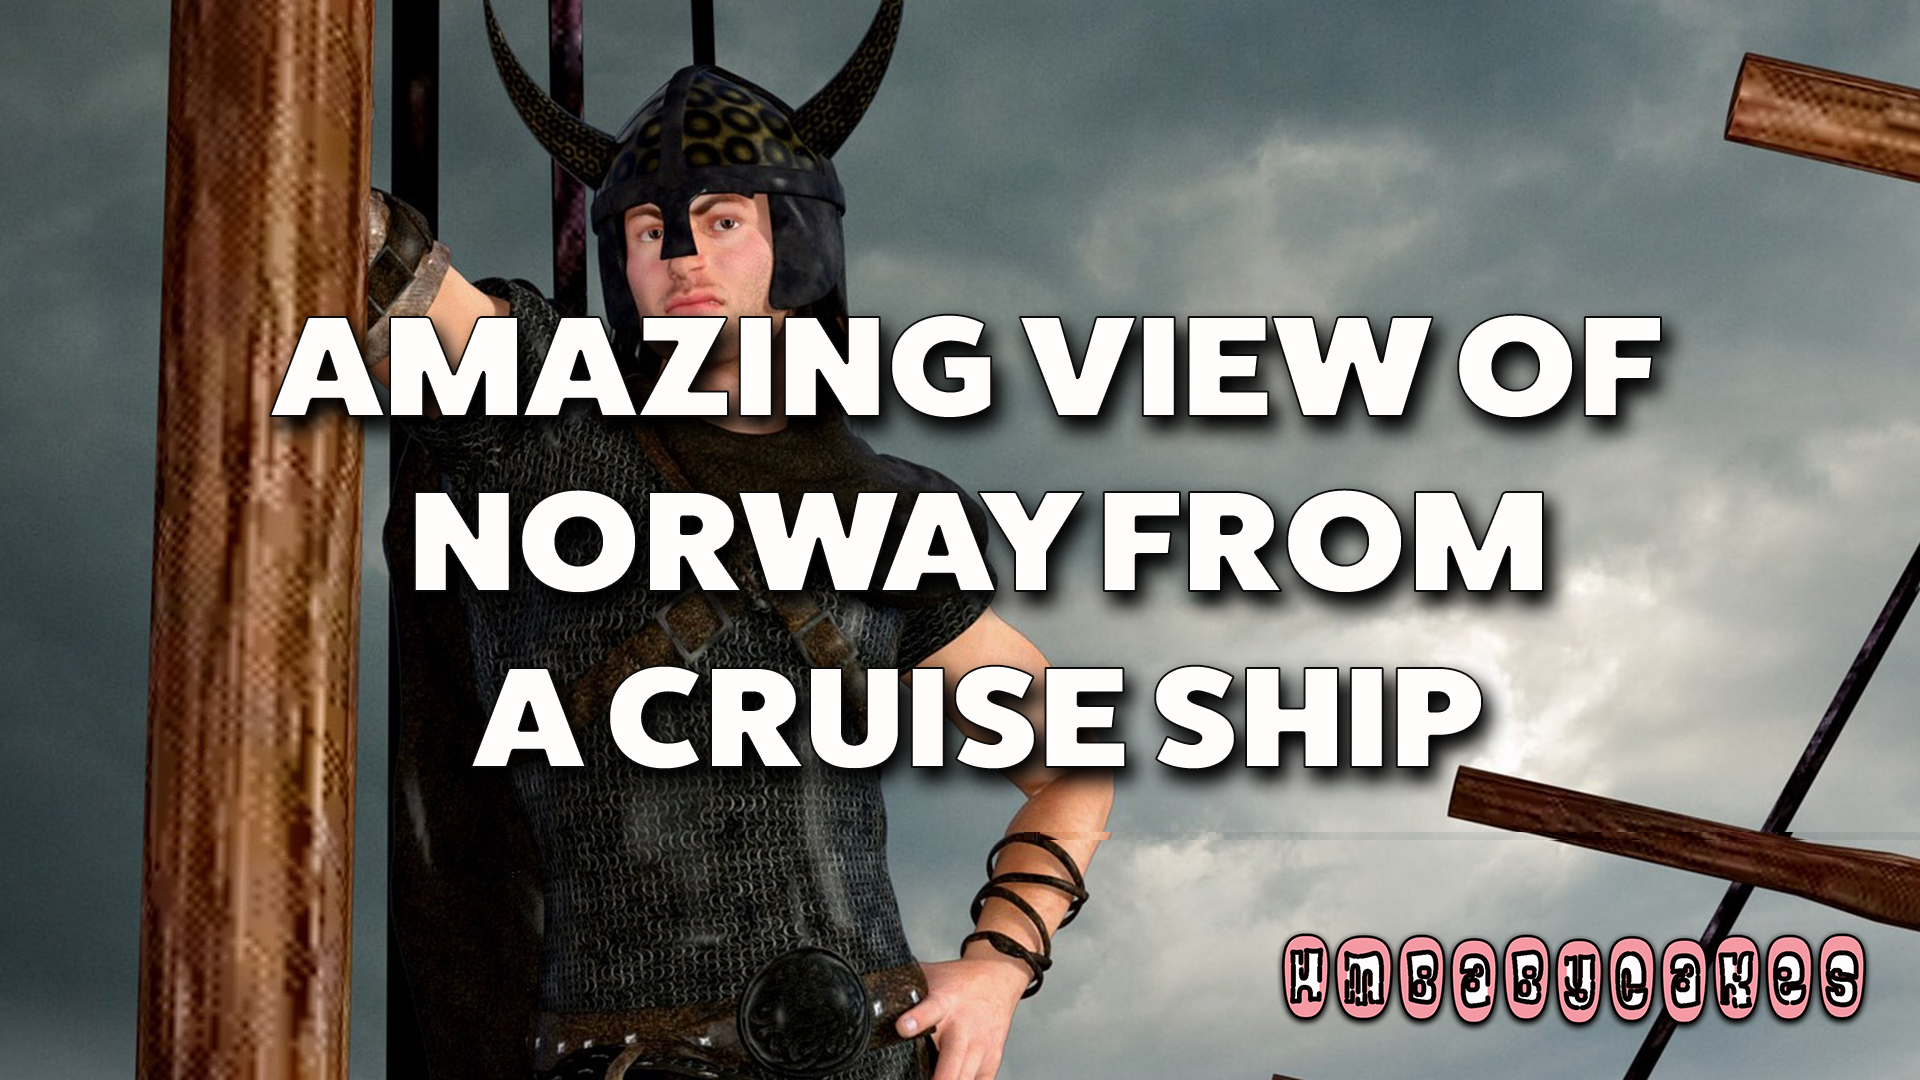 Amazing view of Norwegian fjords from a cruise ship